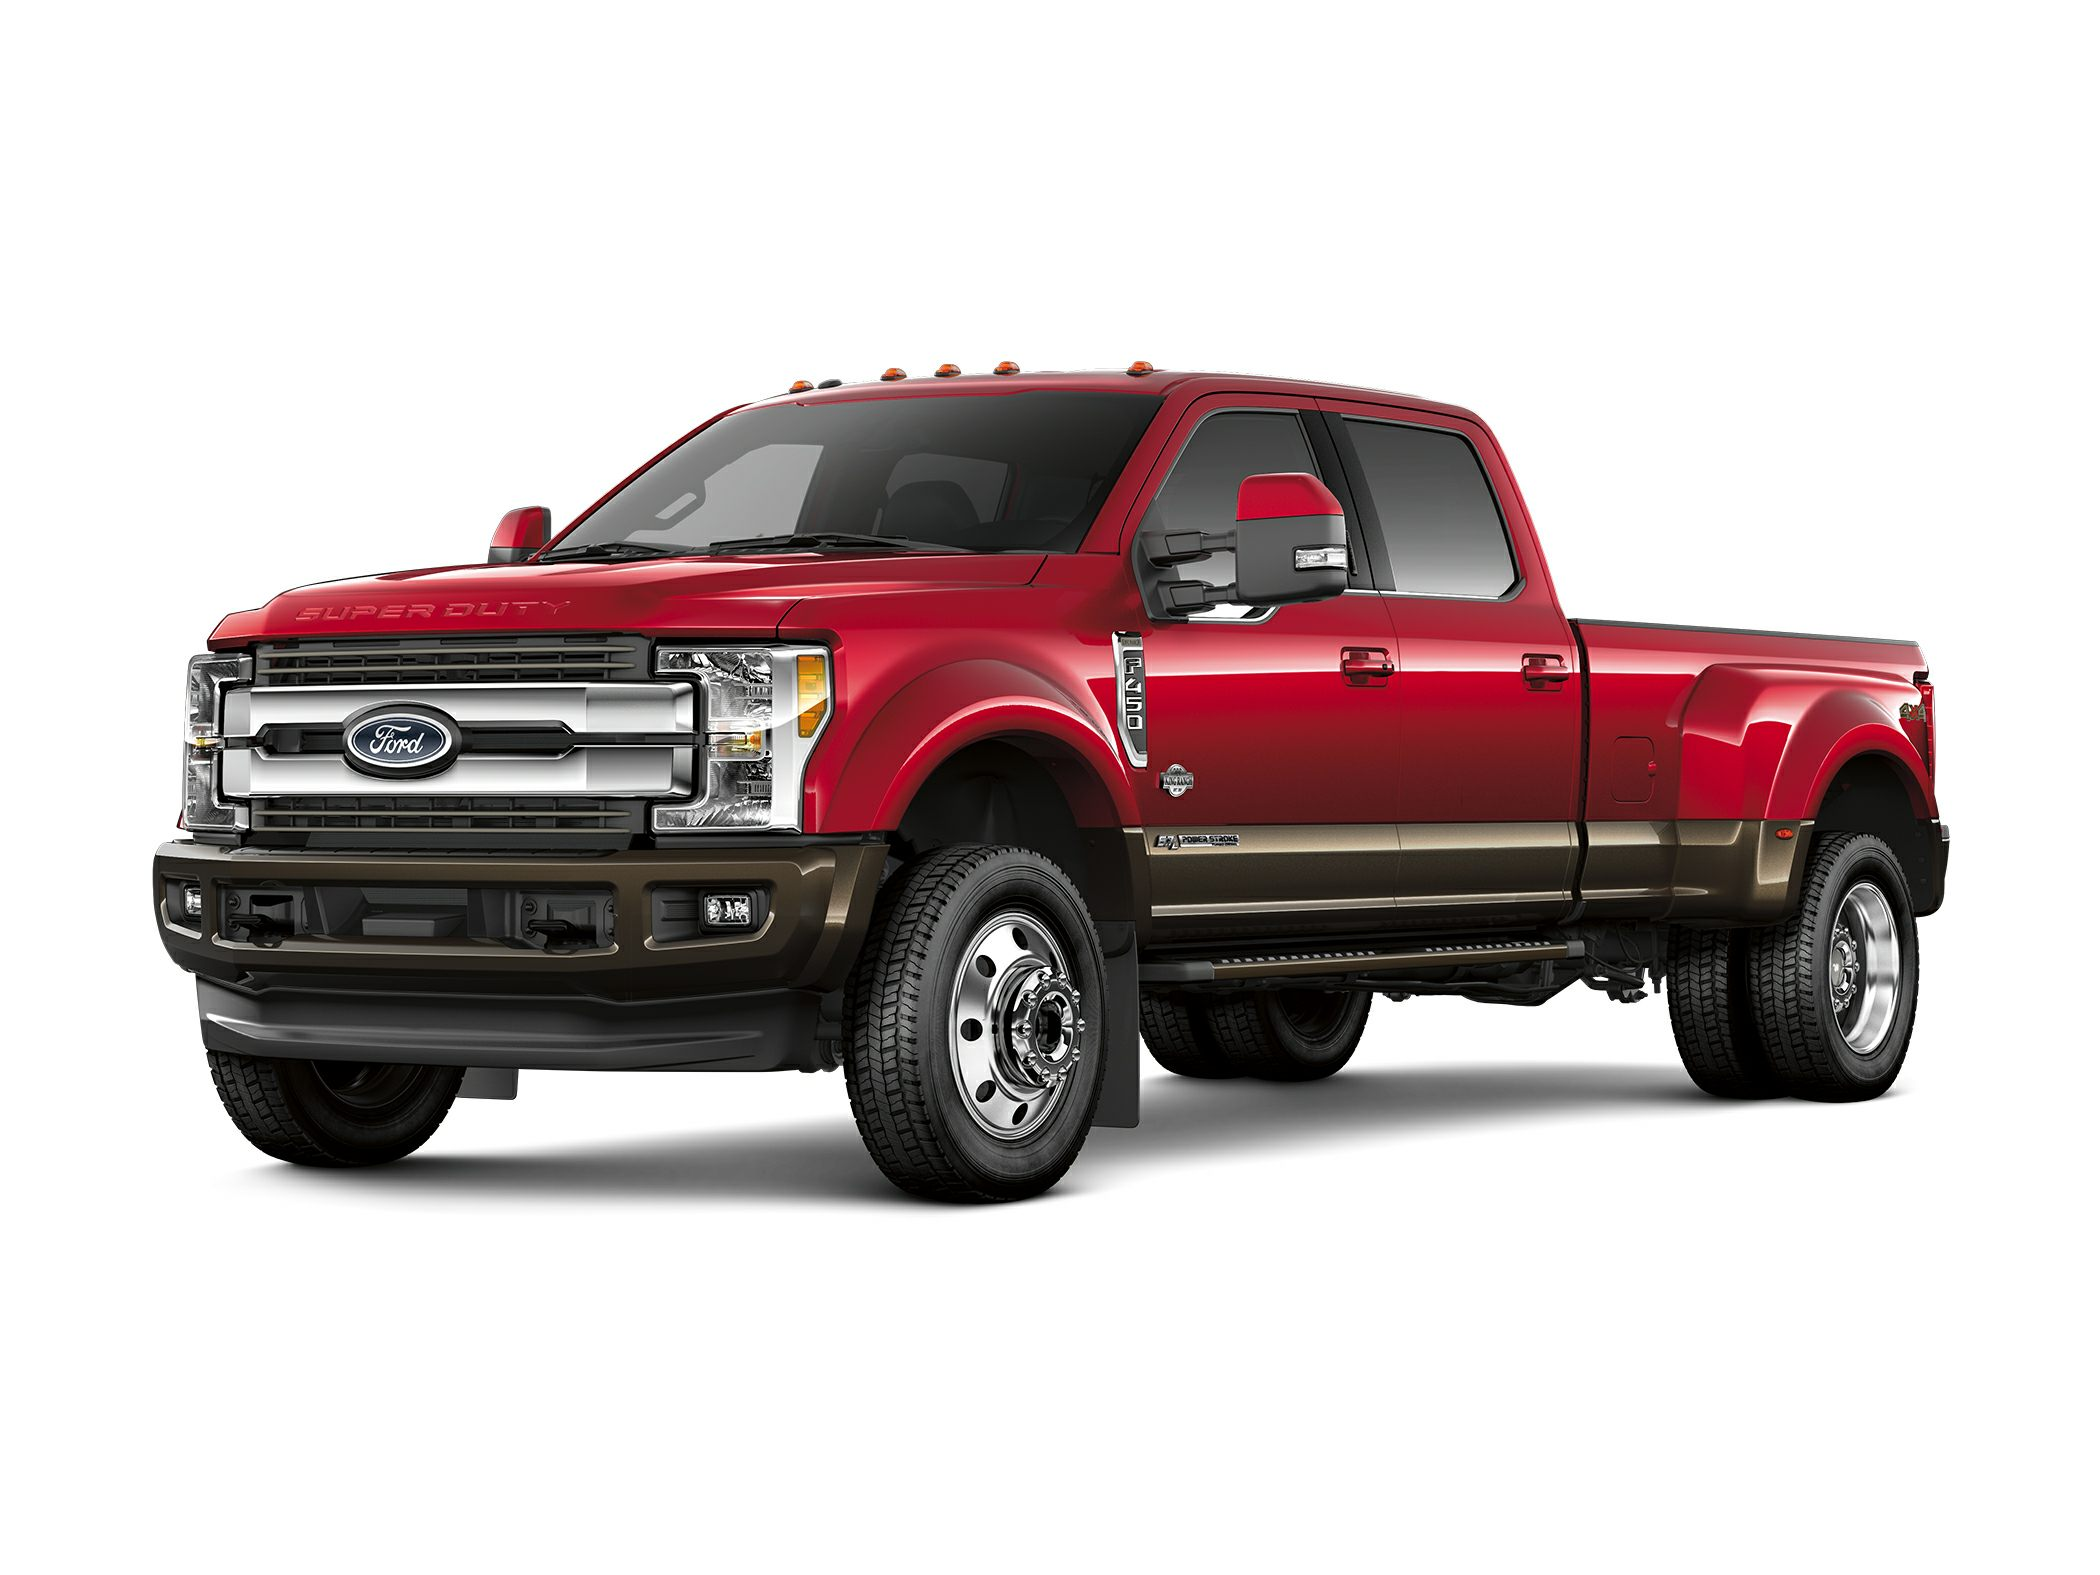 2019 Ford F-350 King Ranch 4x4 SD Crew Cab 8 ft. box 176 in. WB DRW